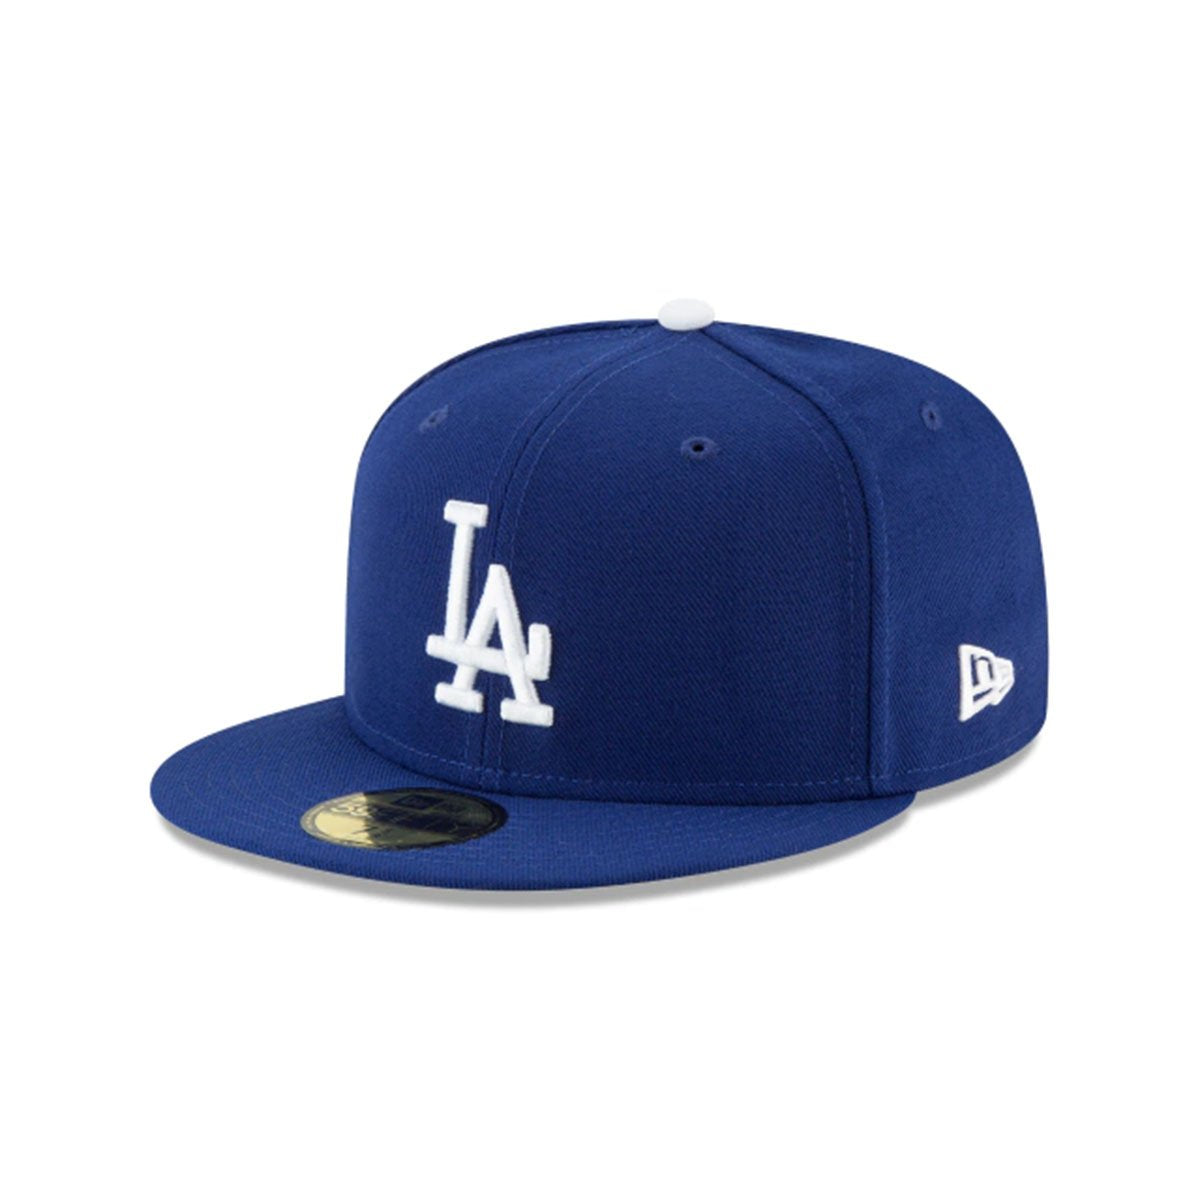 LOS ANGELES DODGERS BASIC 59FIFTY FITTED BLUE/WHITE